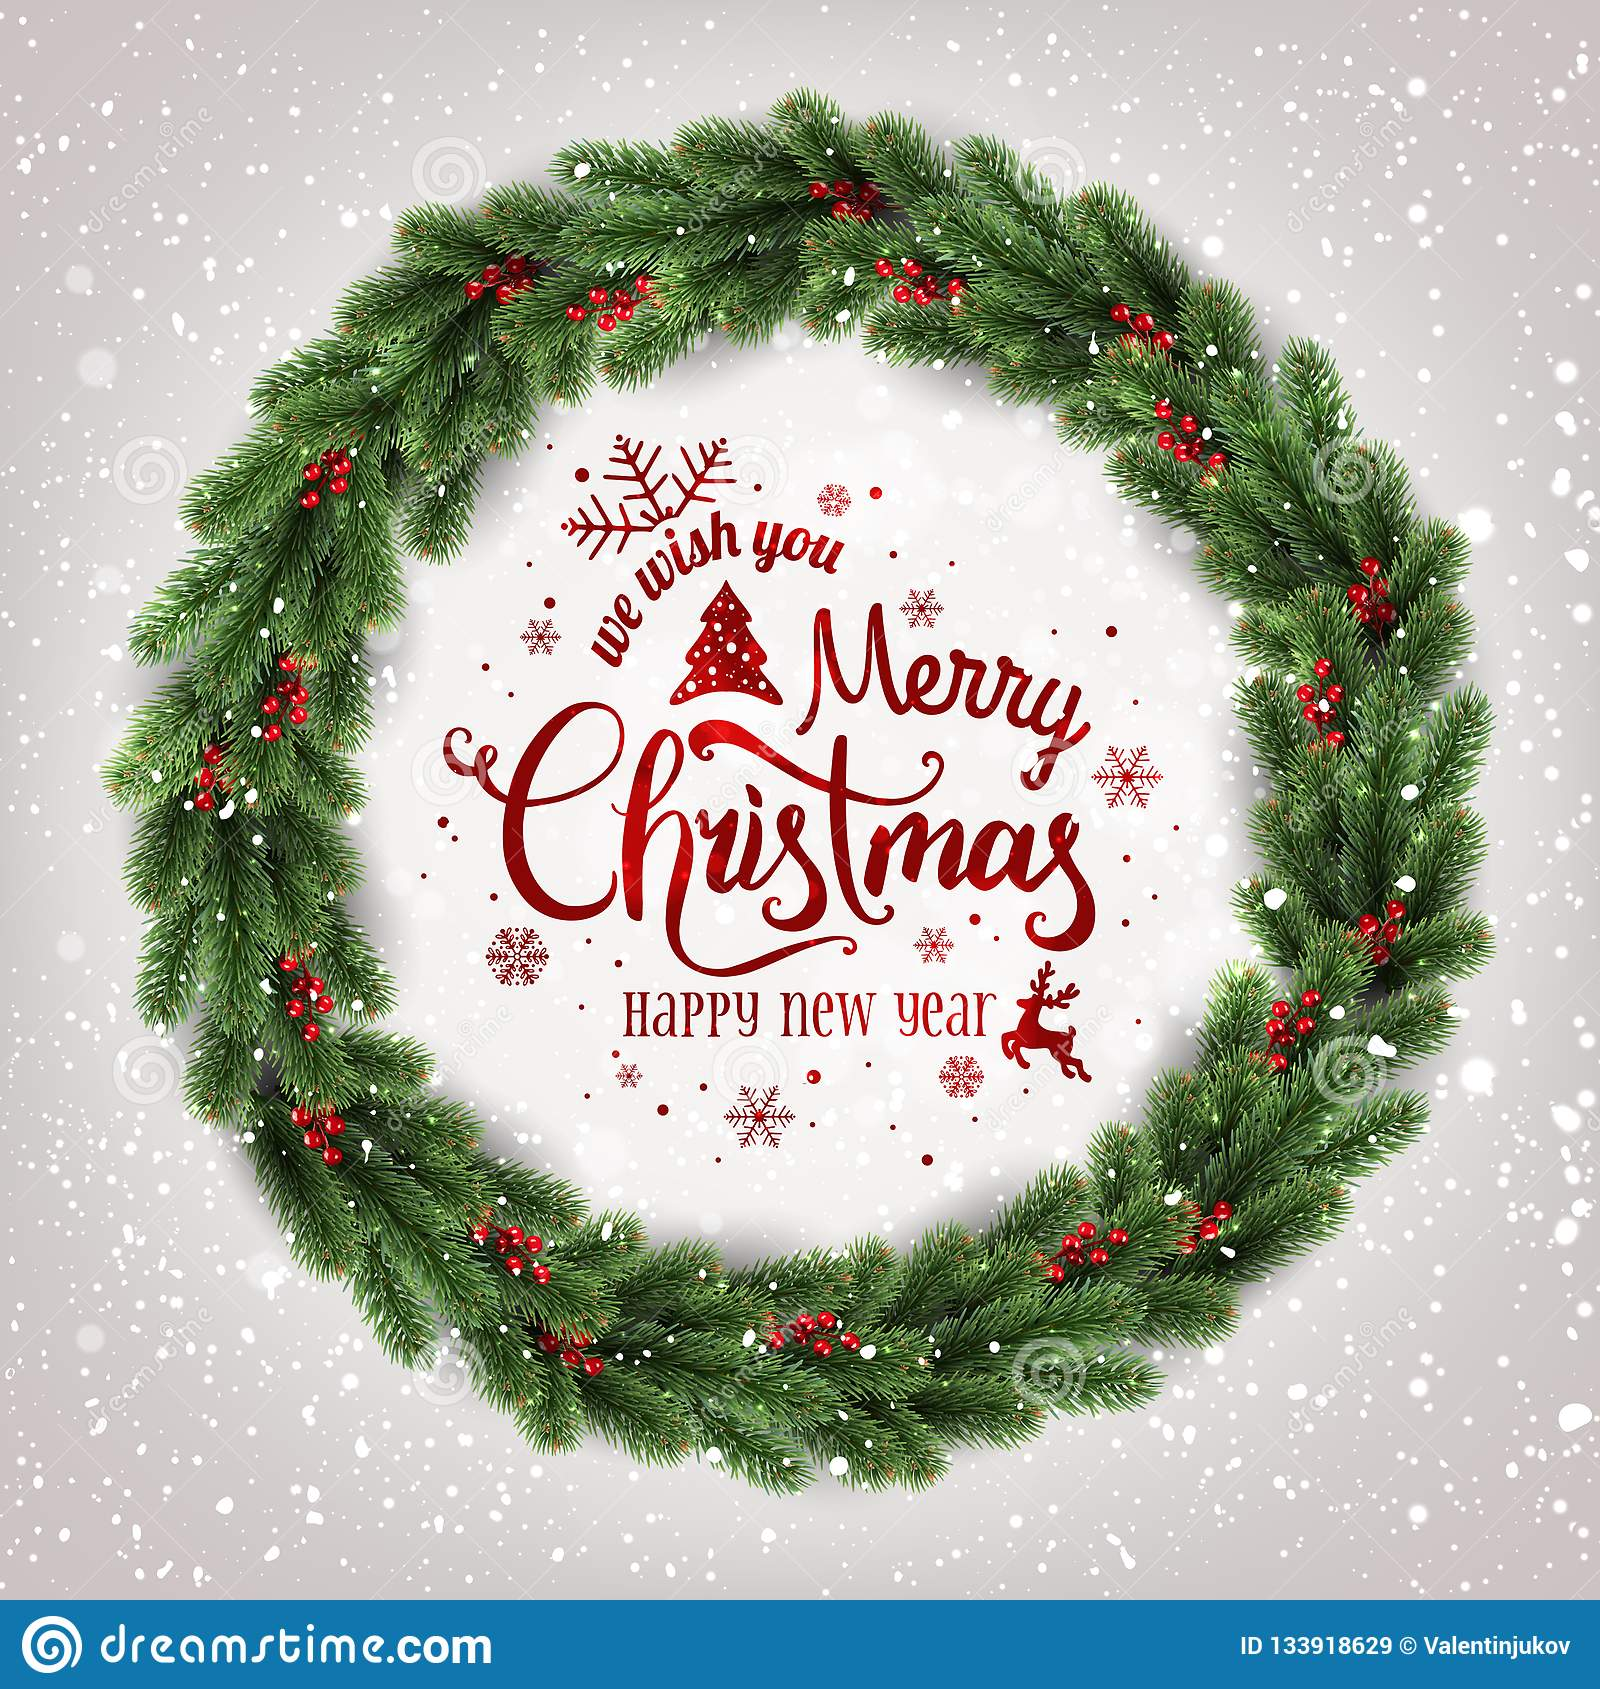 Merry Christmas Typographical on white background with Christmas wreath of tree branches, berries, lights, snowflakes